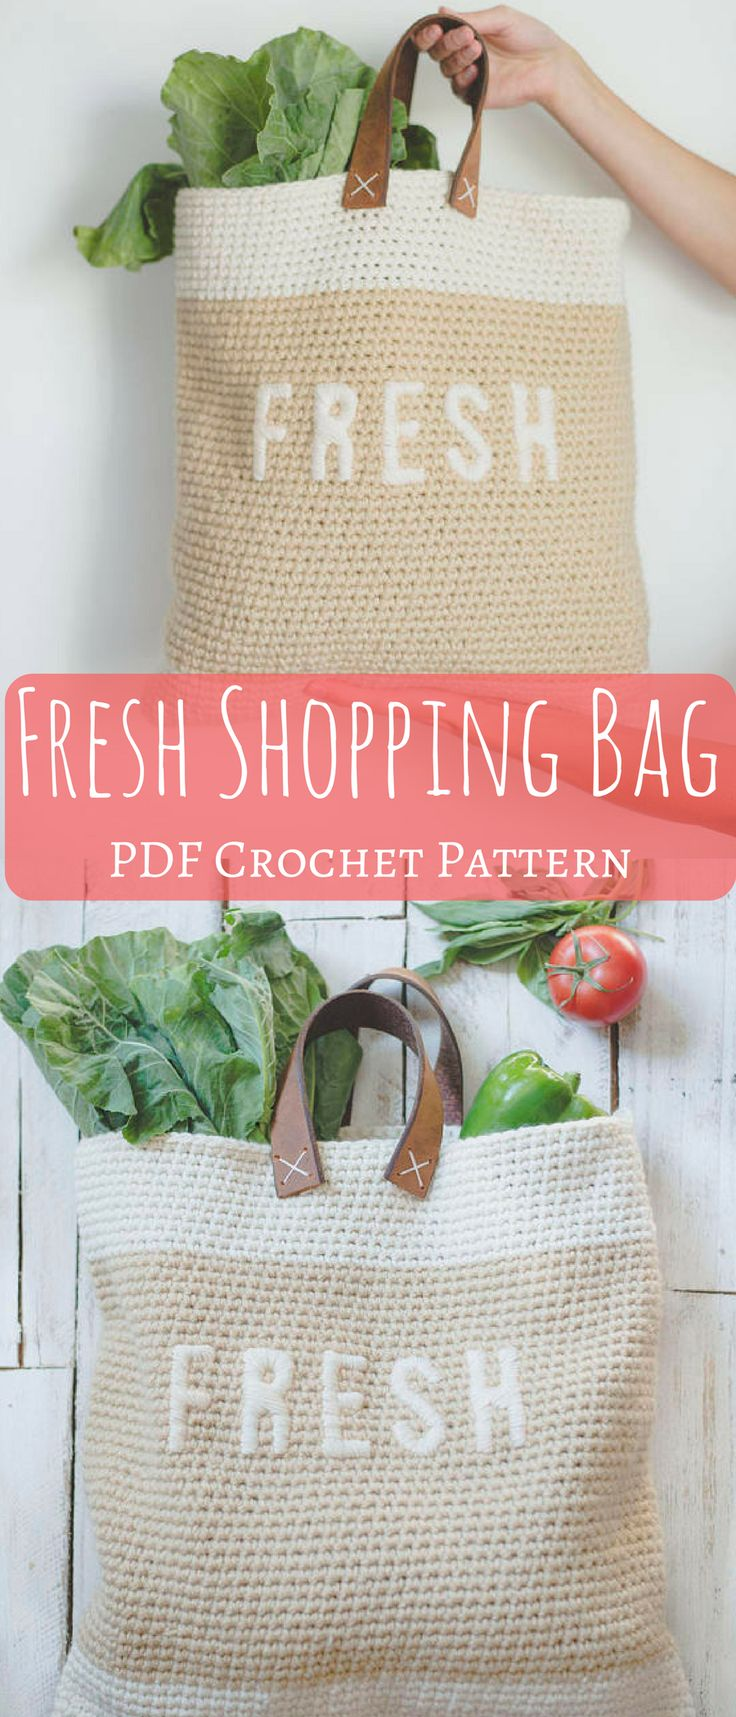 Super cool and simple farmer's market FRESH shopping bag that you can make yourself. This will make a nice diy project as I hate the plastic and paper shopping bags. #shoppingbag #ad #farmersmarketbag #crochetbag #crochetpattern